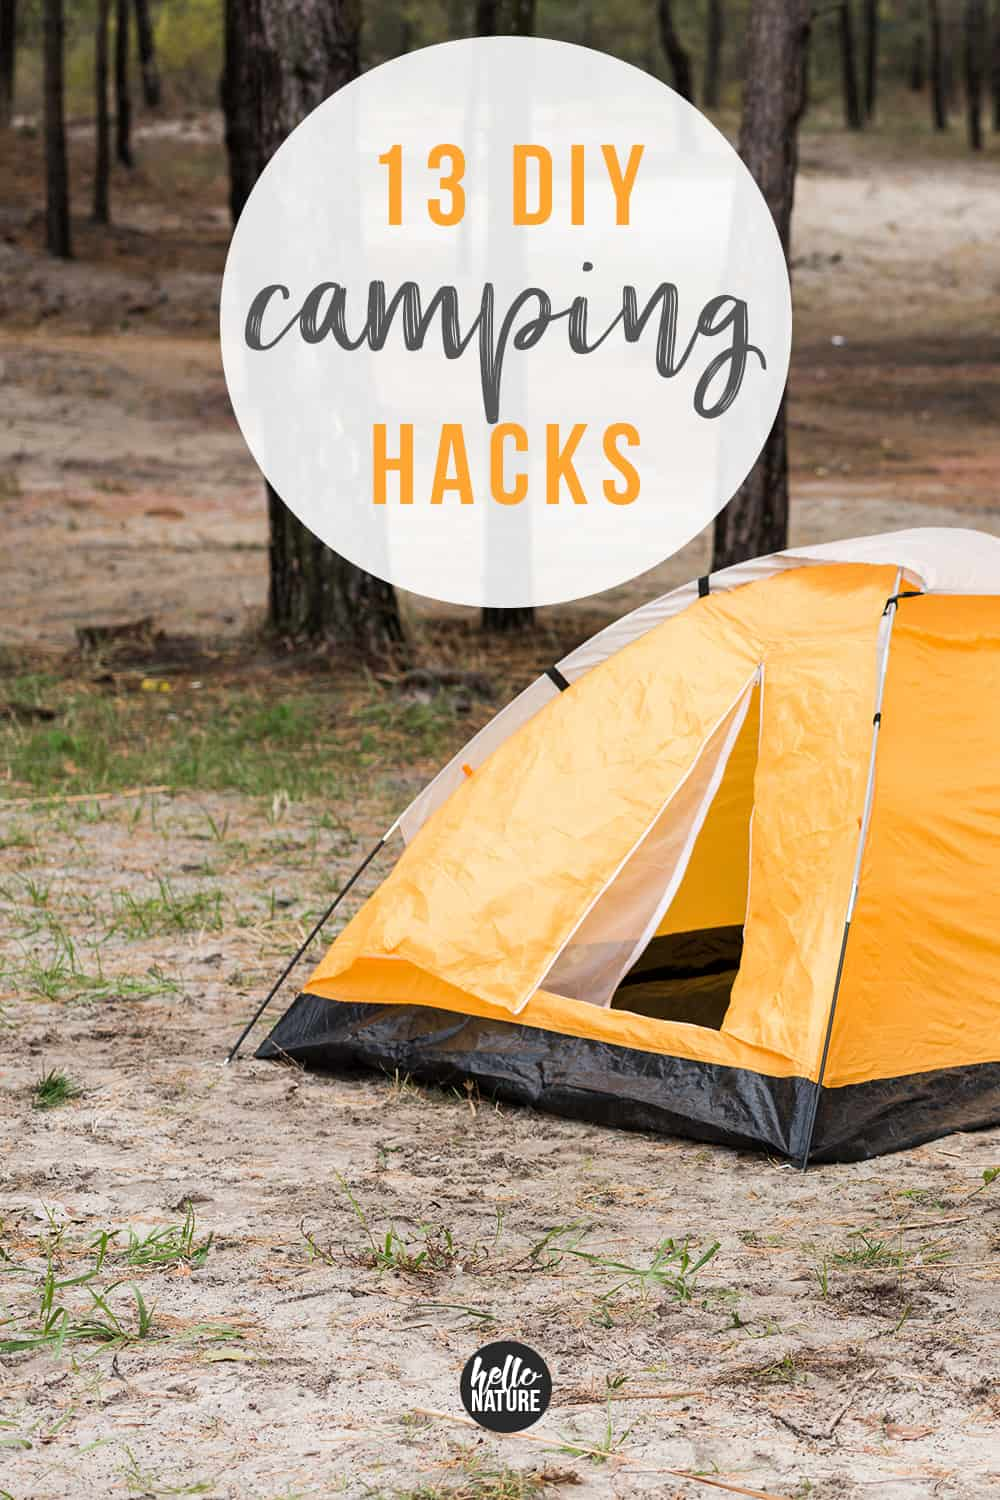 Looking for summer diy camping projects? You'll love these awesome and simple diy camping ideas! From lanterns to shirts to toys and more, your next camping trip will be even more fun with these hacks and projects! #Camping #DIYCamping #CampingHack